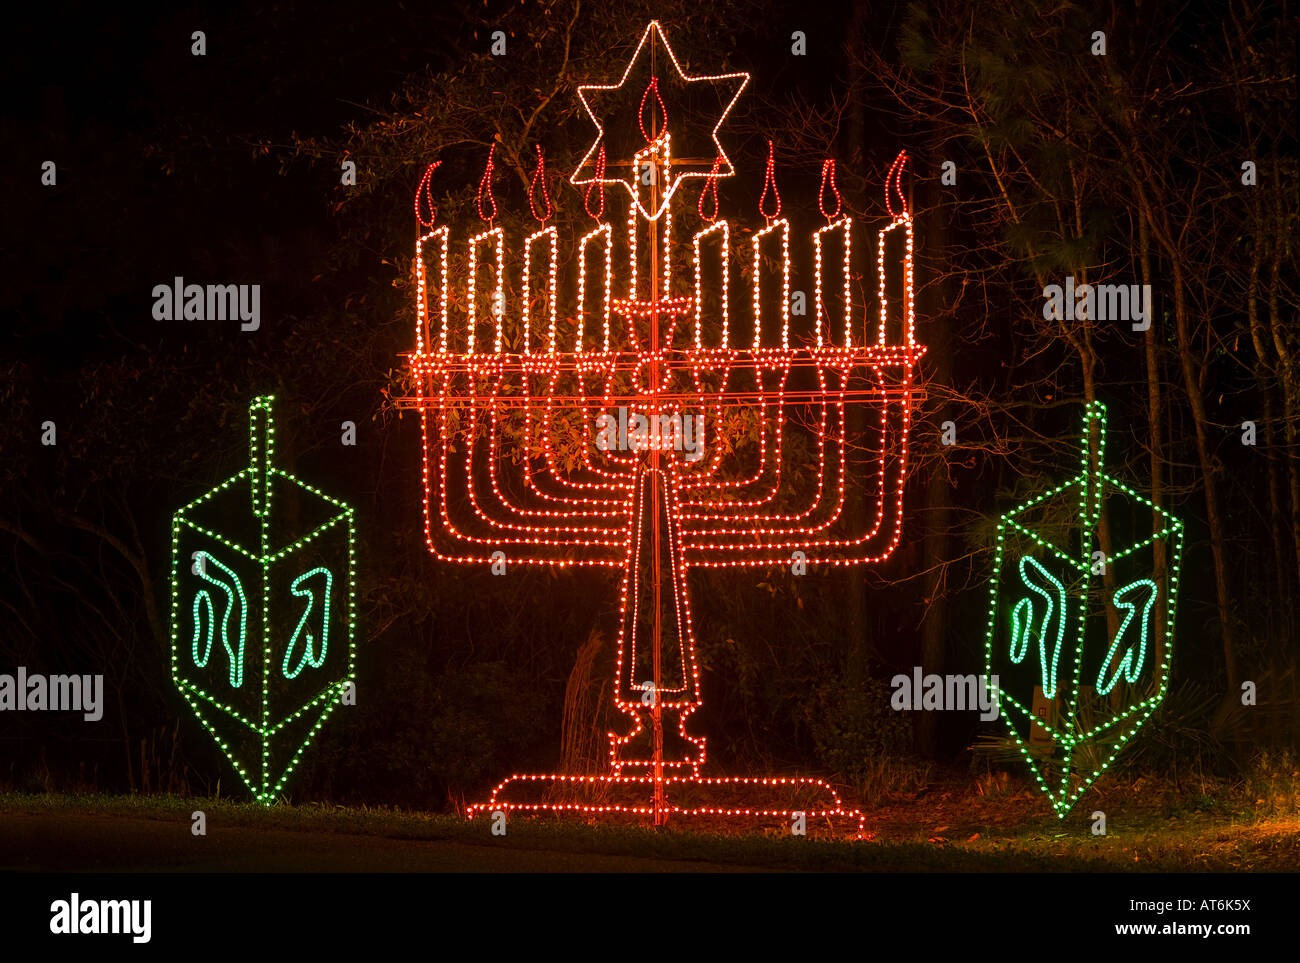 Chanukah menorah defined in lighting - Stock Image